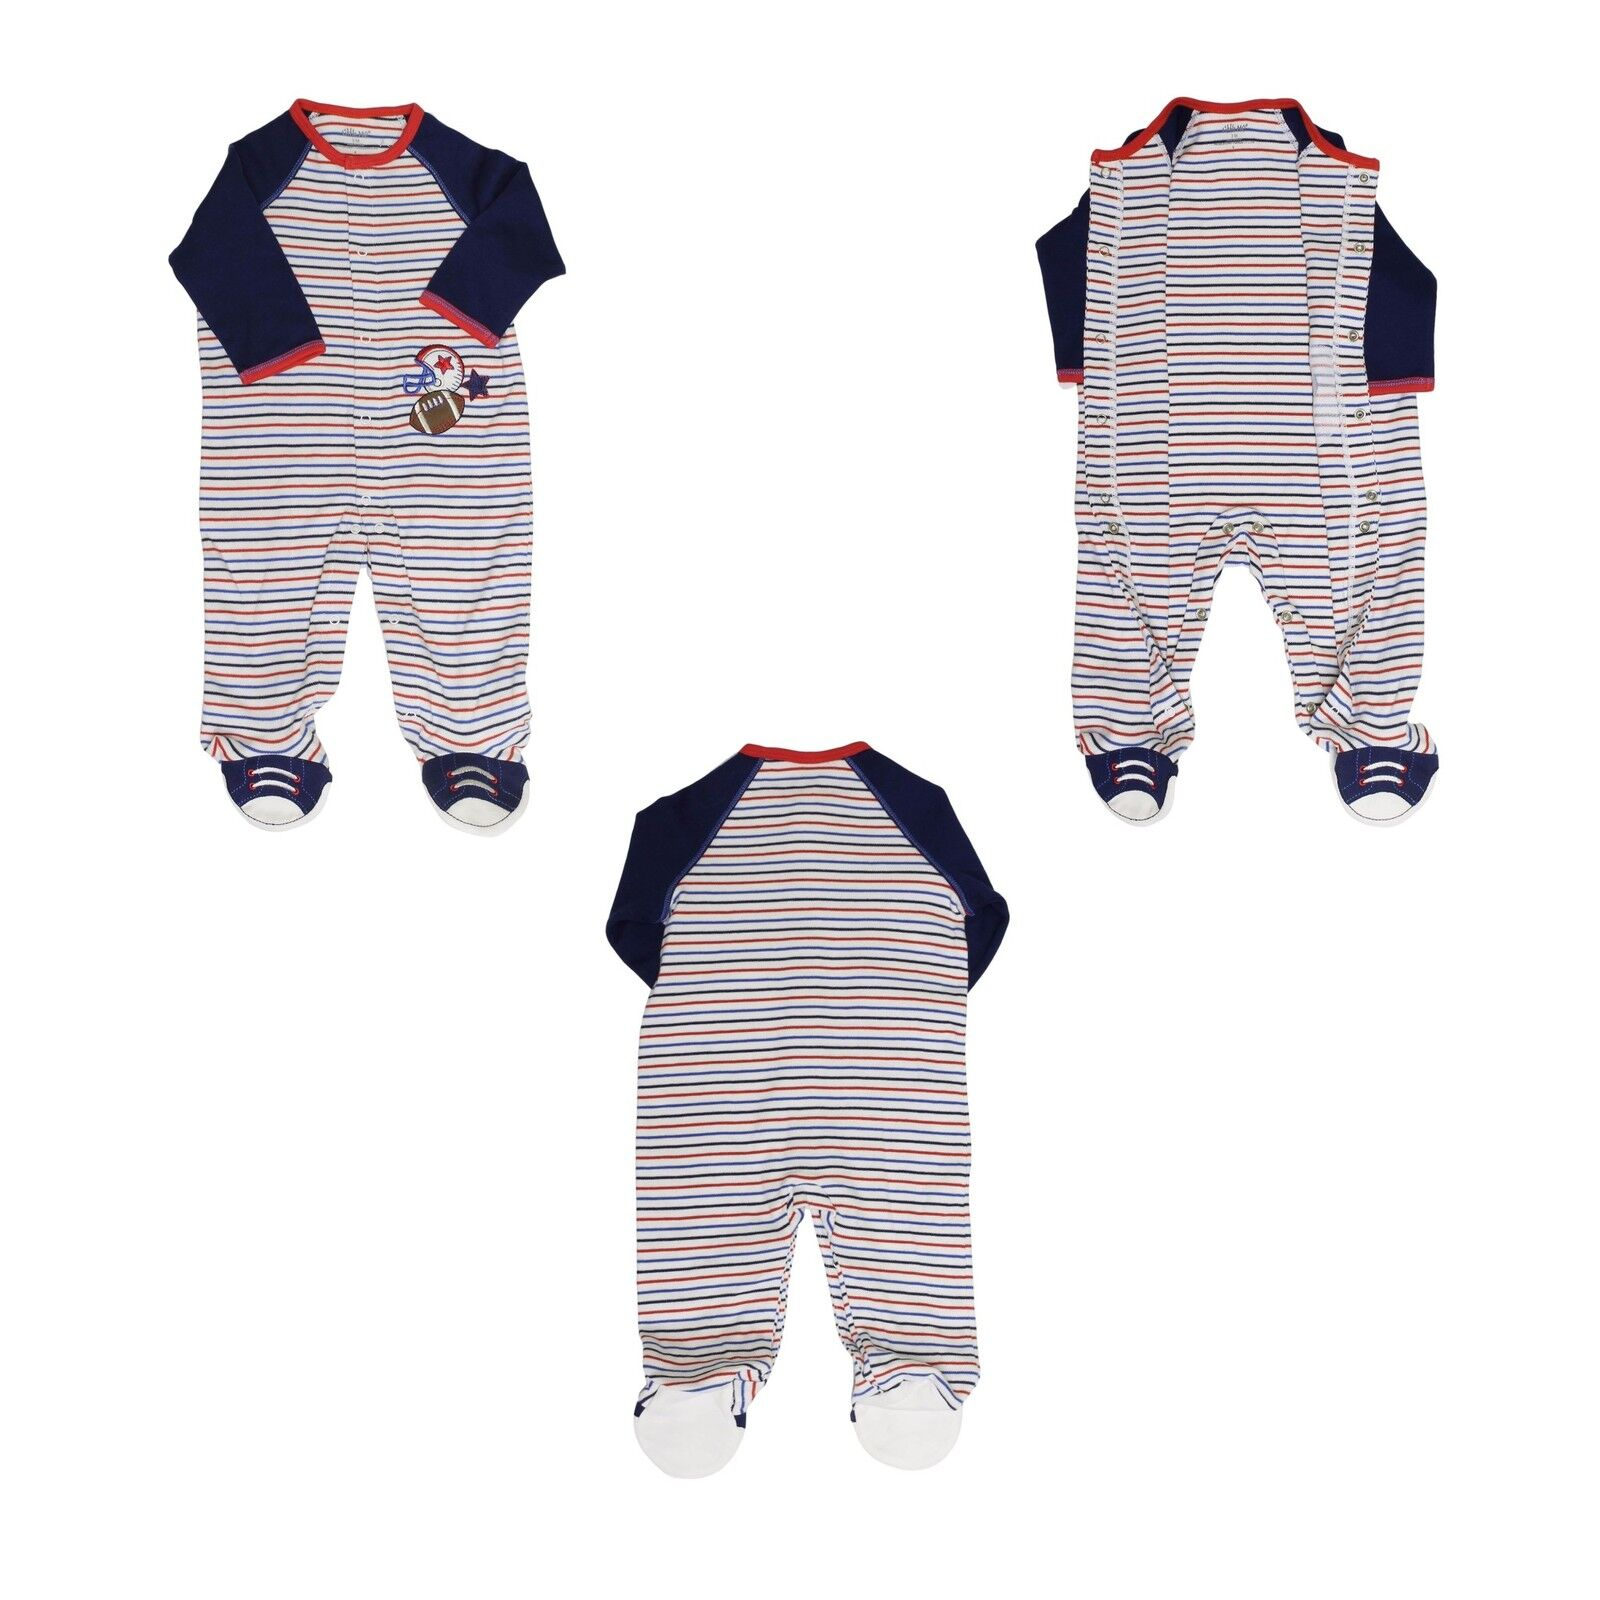 8f596ecd2 Little Me Baby Boys Footie Footed Pajamas Blue 3 Months